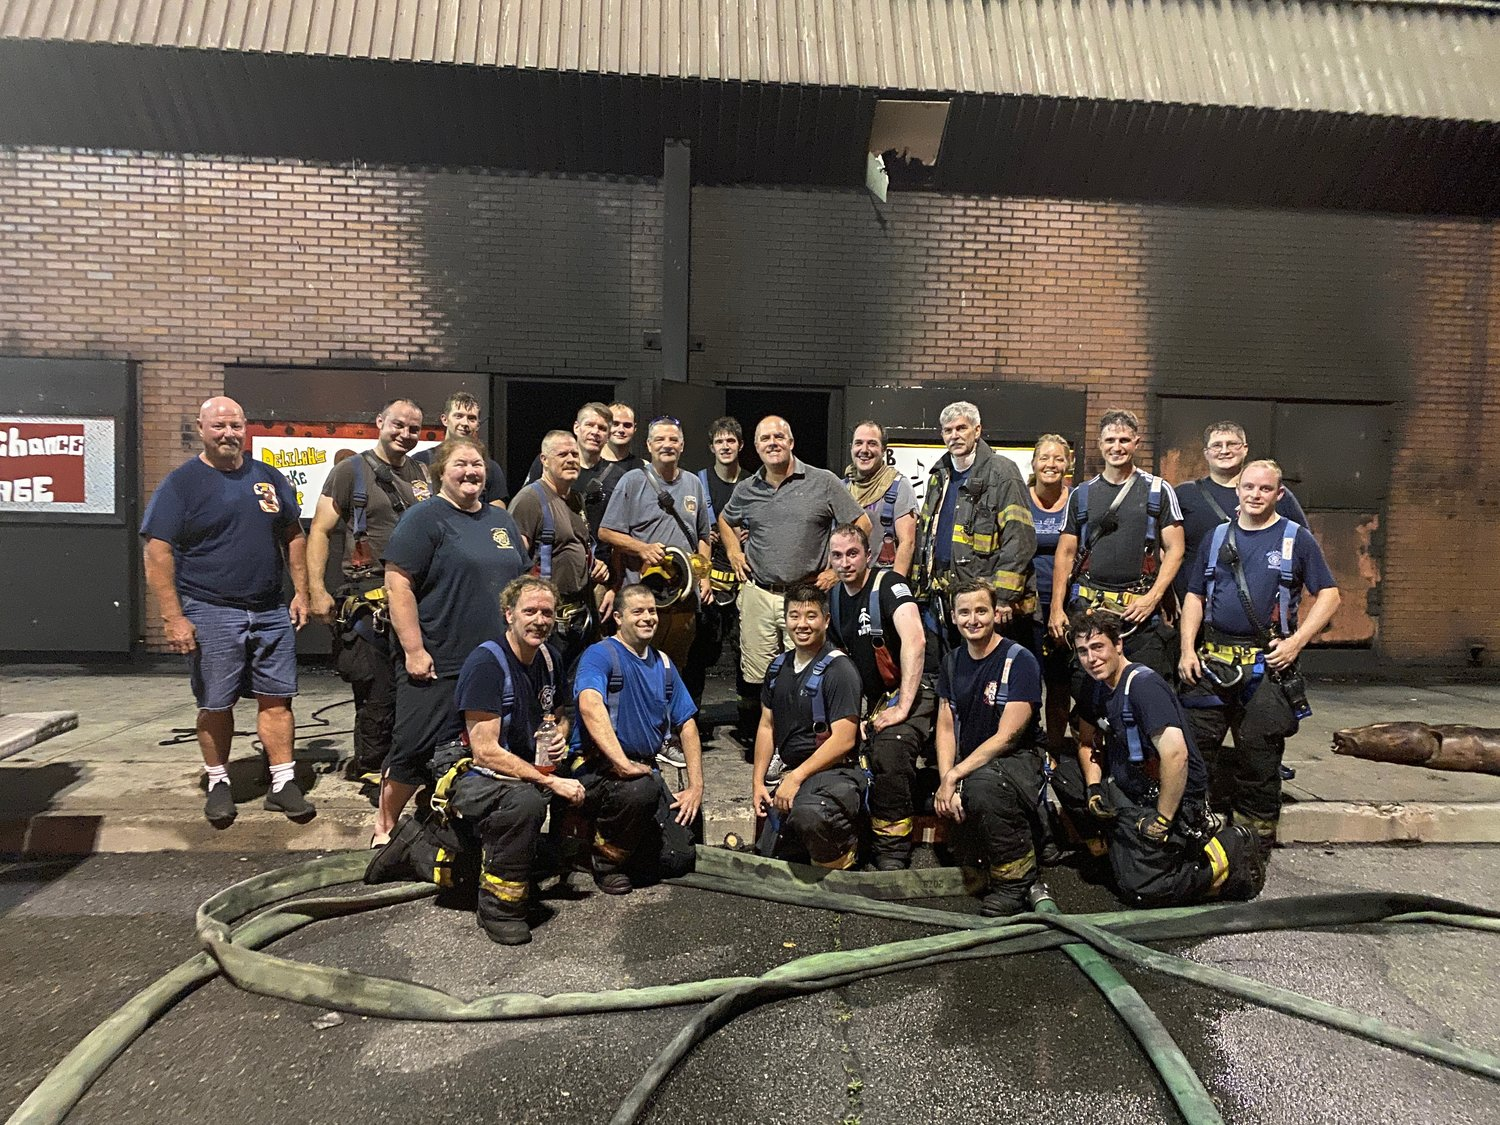 Bob Taylor, standing at center, joined with other members of the Bellmore Fire Department at the Fire Service Academy this summer.